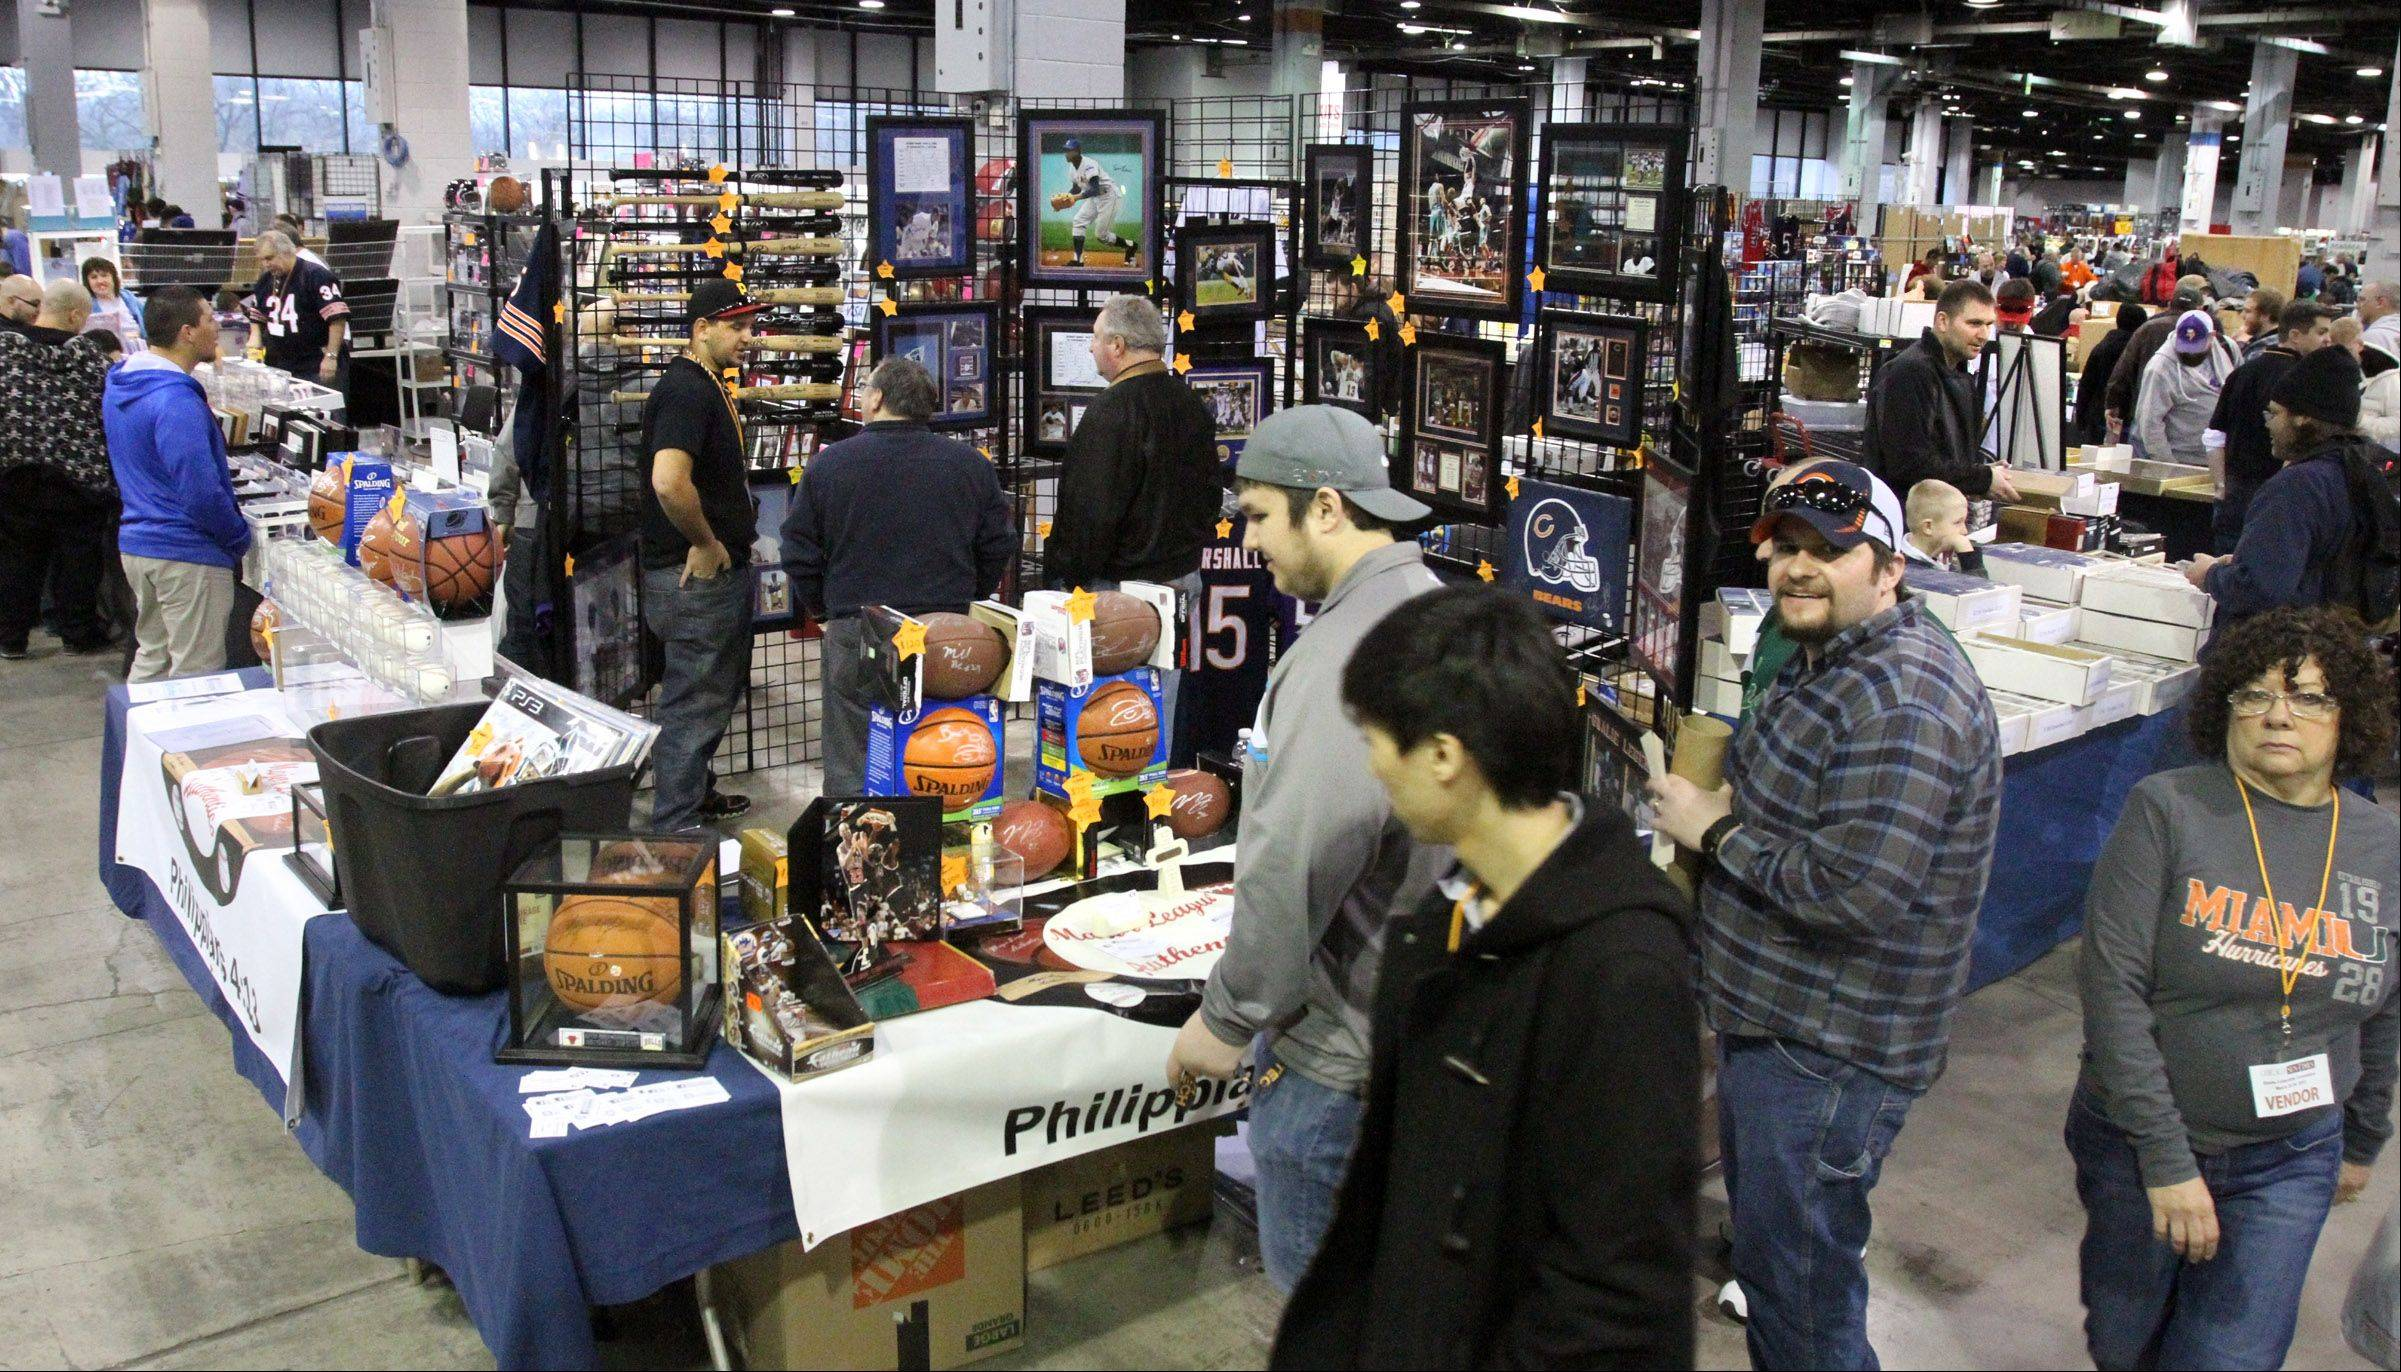 Thousands of sports fans turned out Sunday for the 46th annual Sun-Times Sports Collectibles Show at the Donald E. Stevens Convention Center in Rosemont.